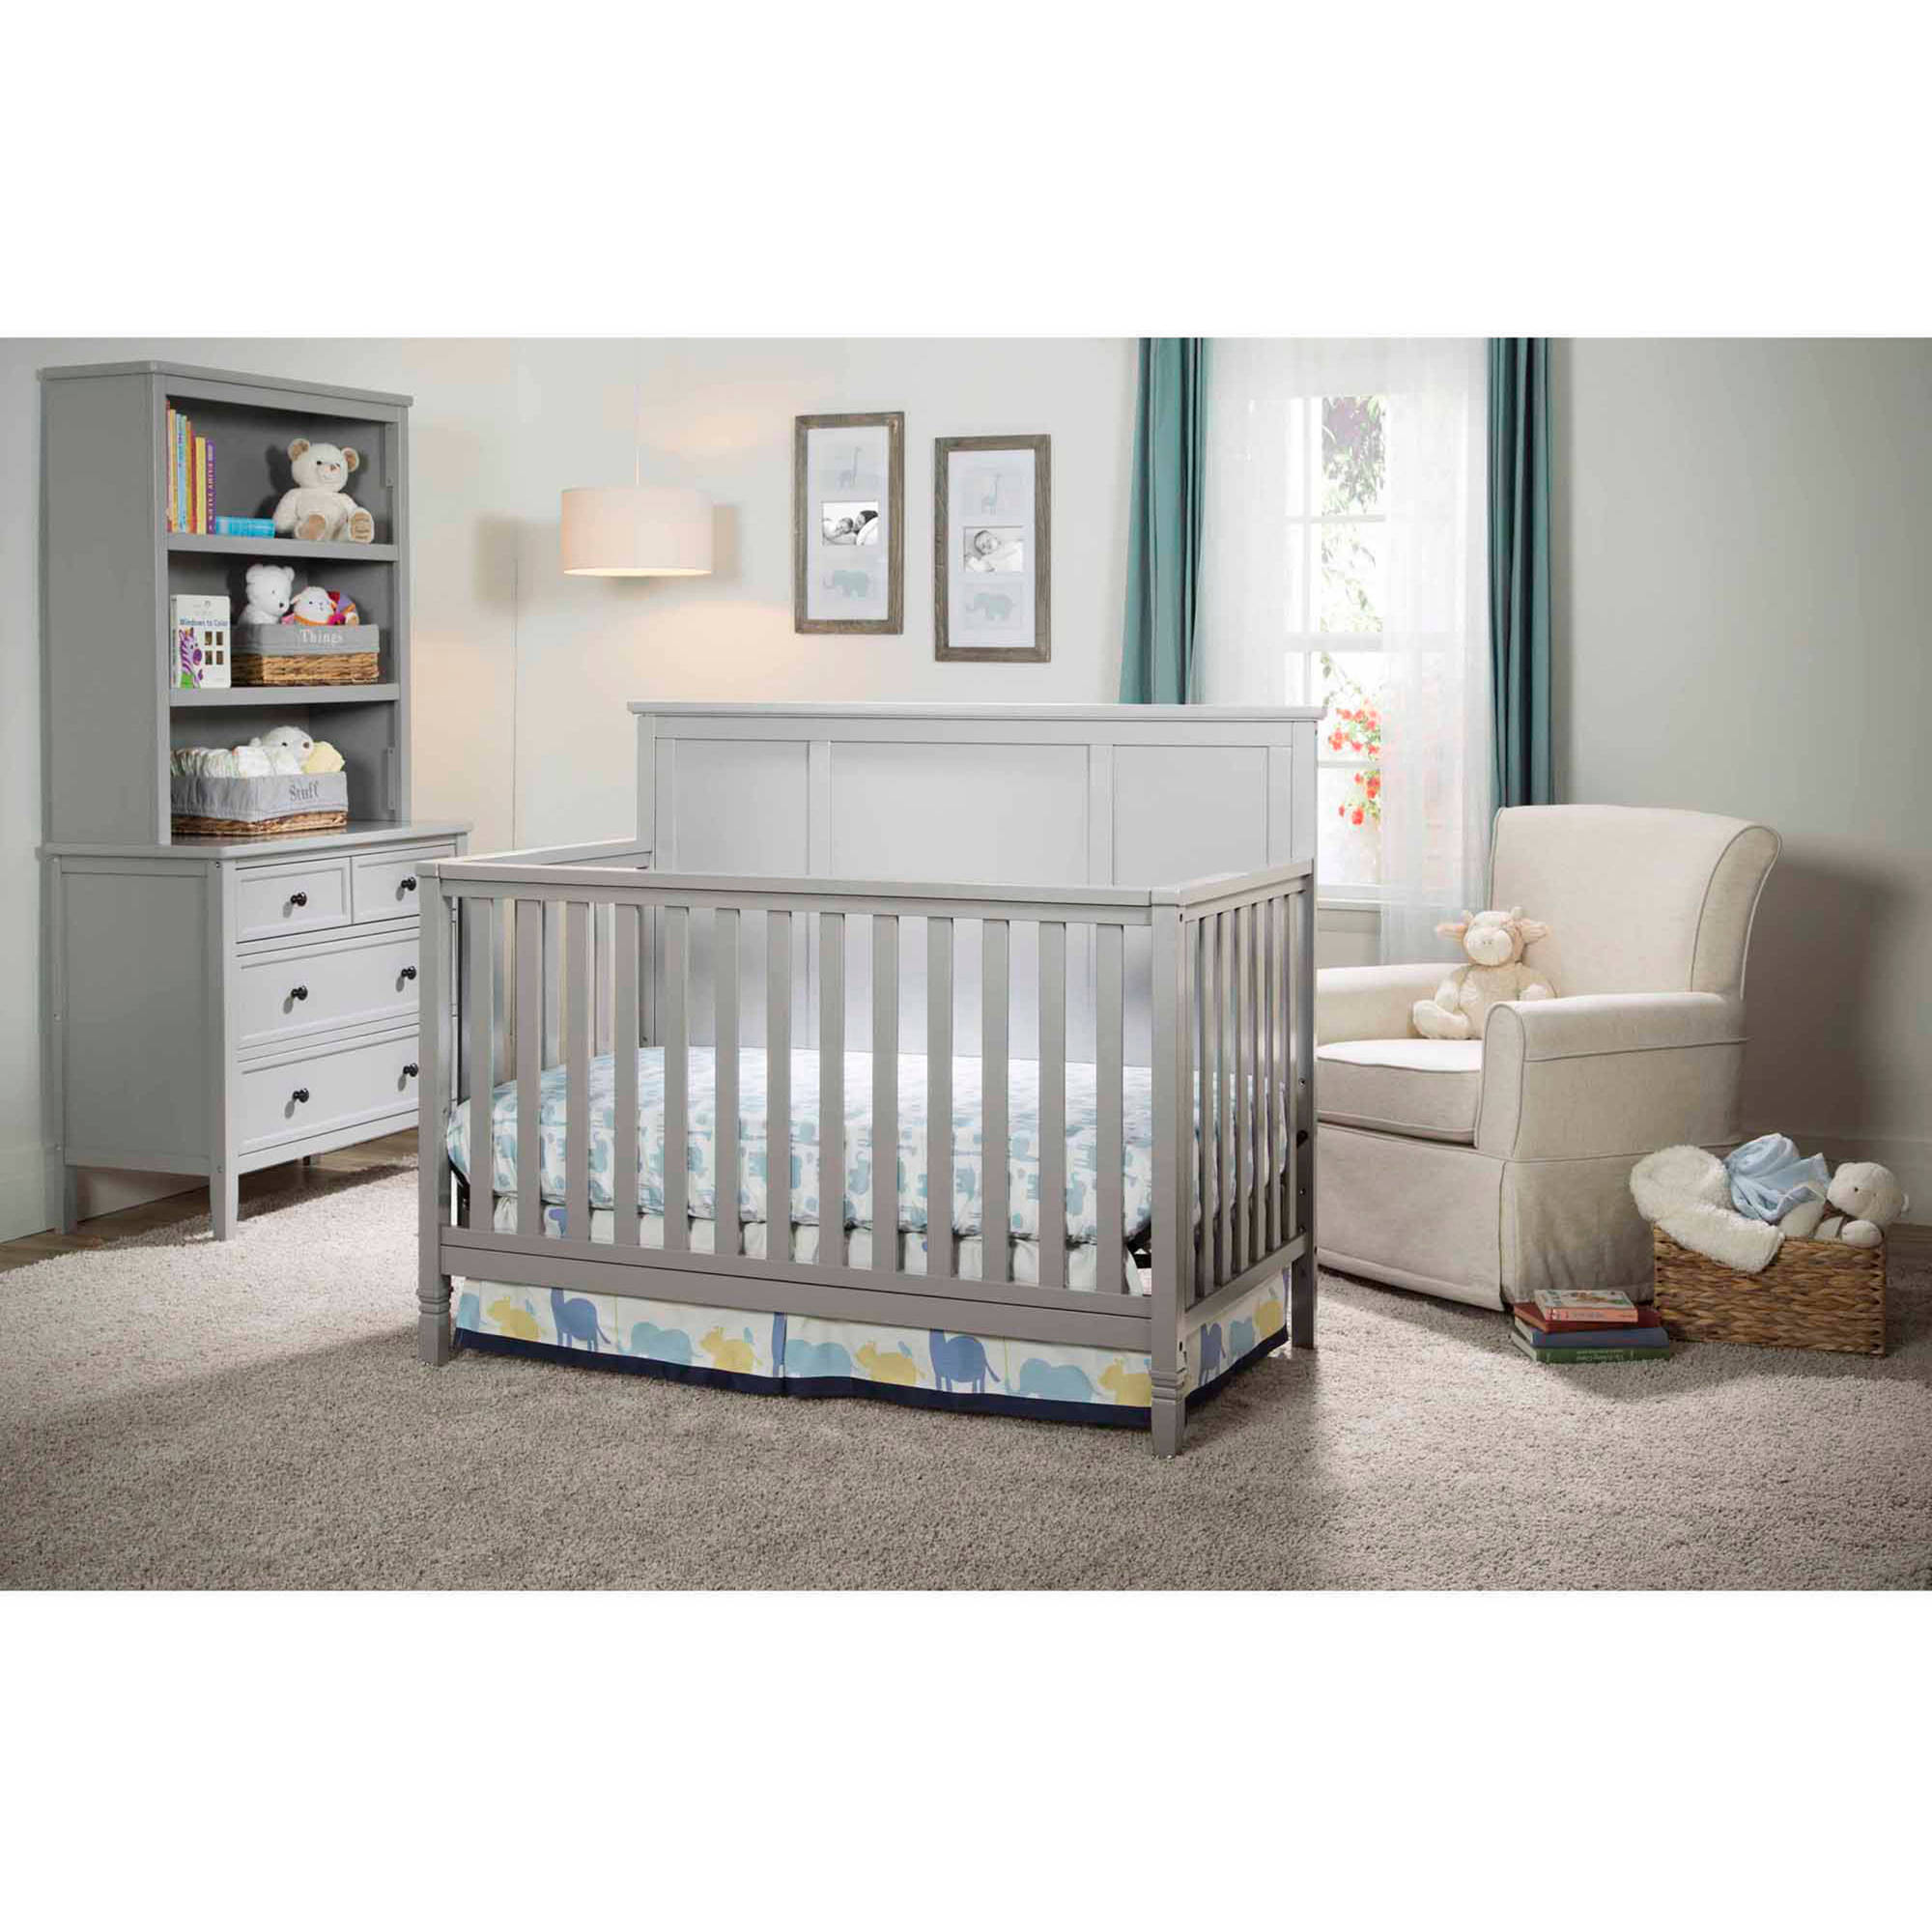 . Delta Children Epic 4 in 1 Convertible Crib Gray   Walmart com